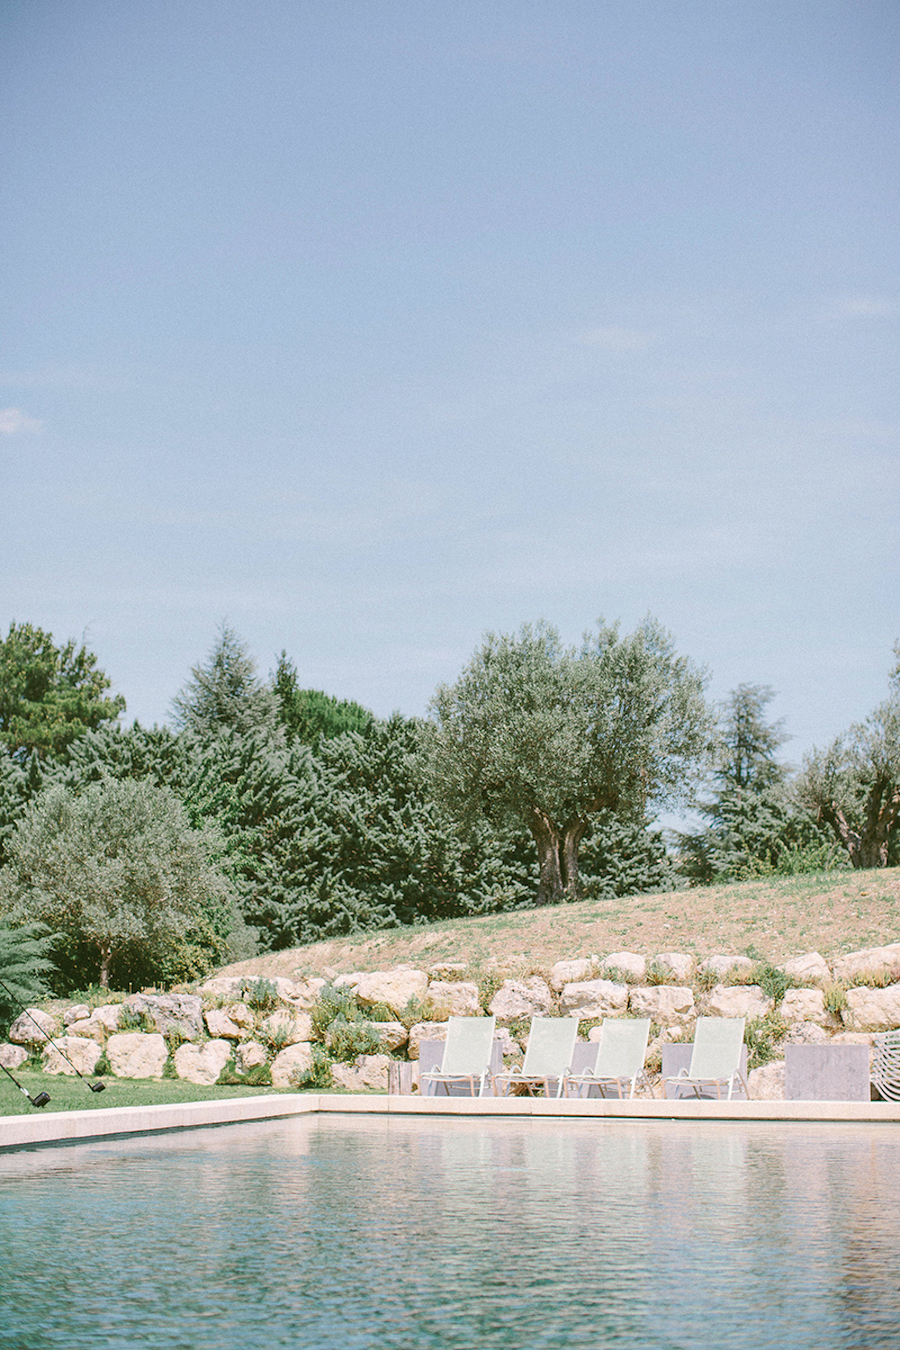 saya-photography-wedding-elegant-romantic-venue-provence-lourmarin-le-galinier-.jpg